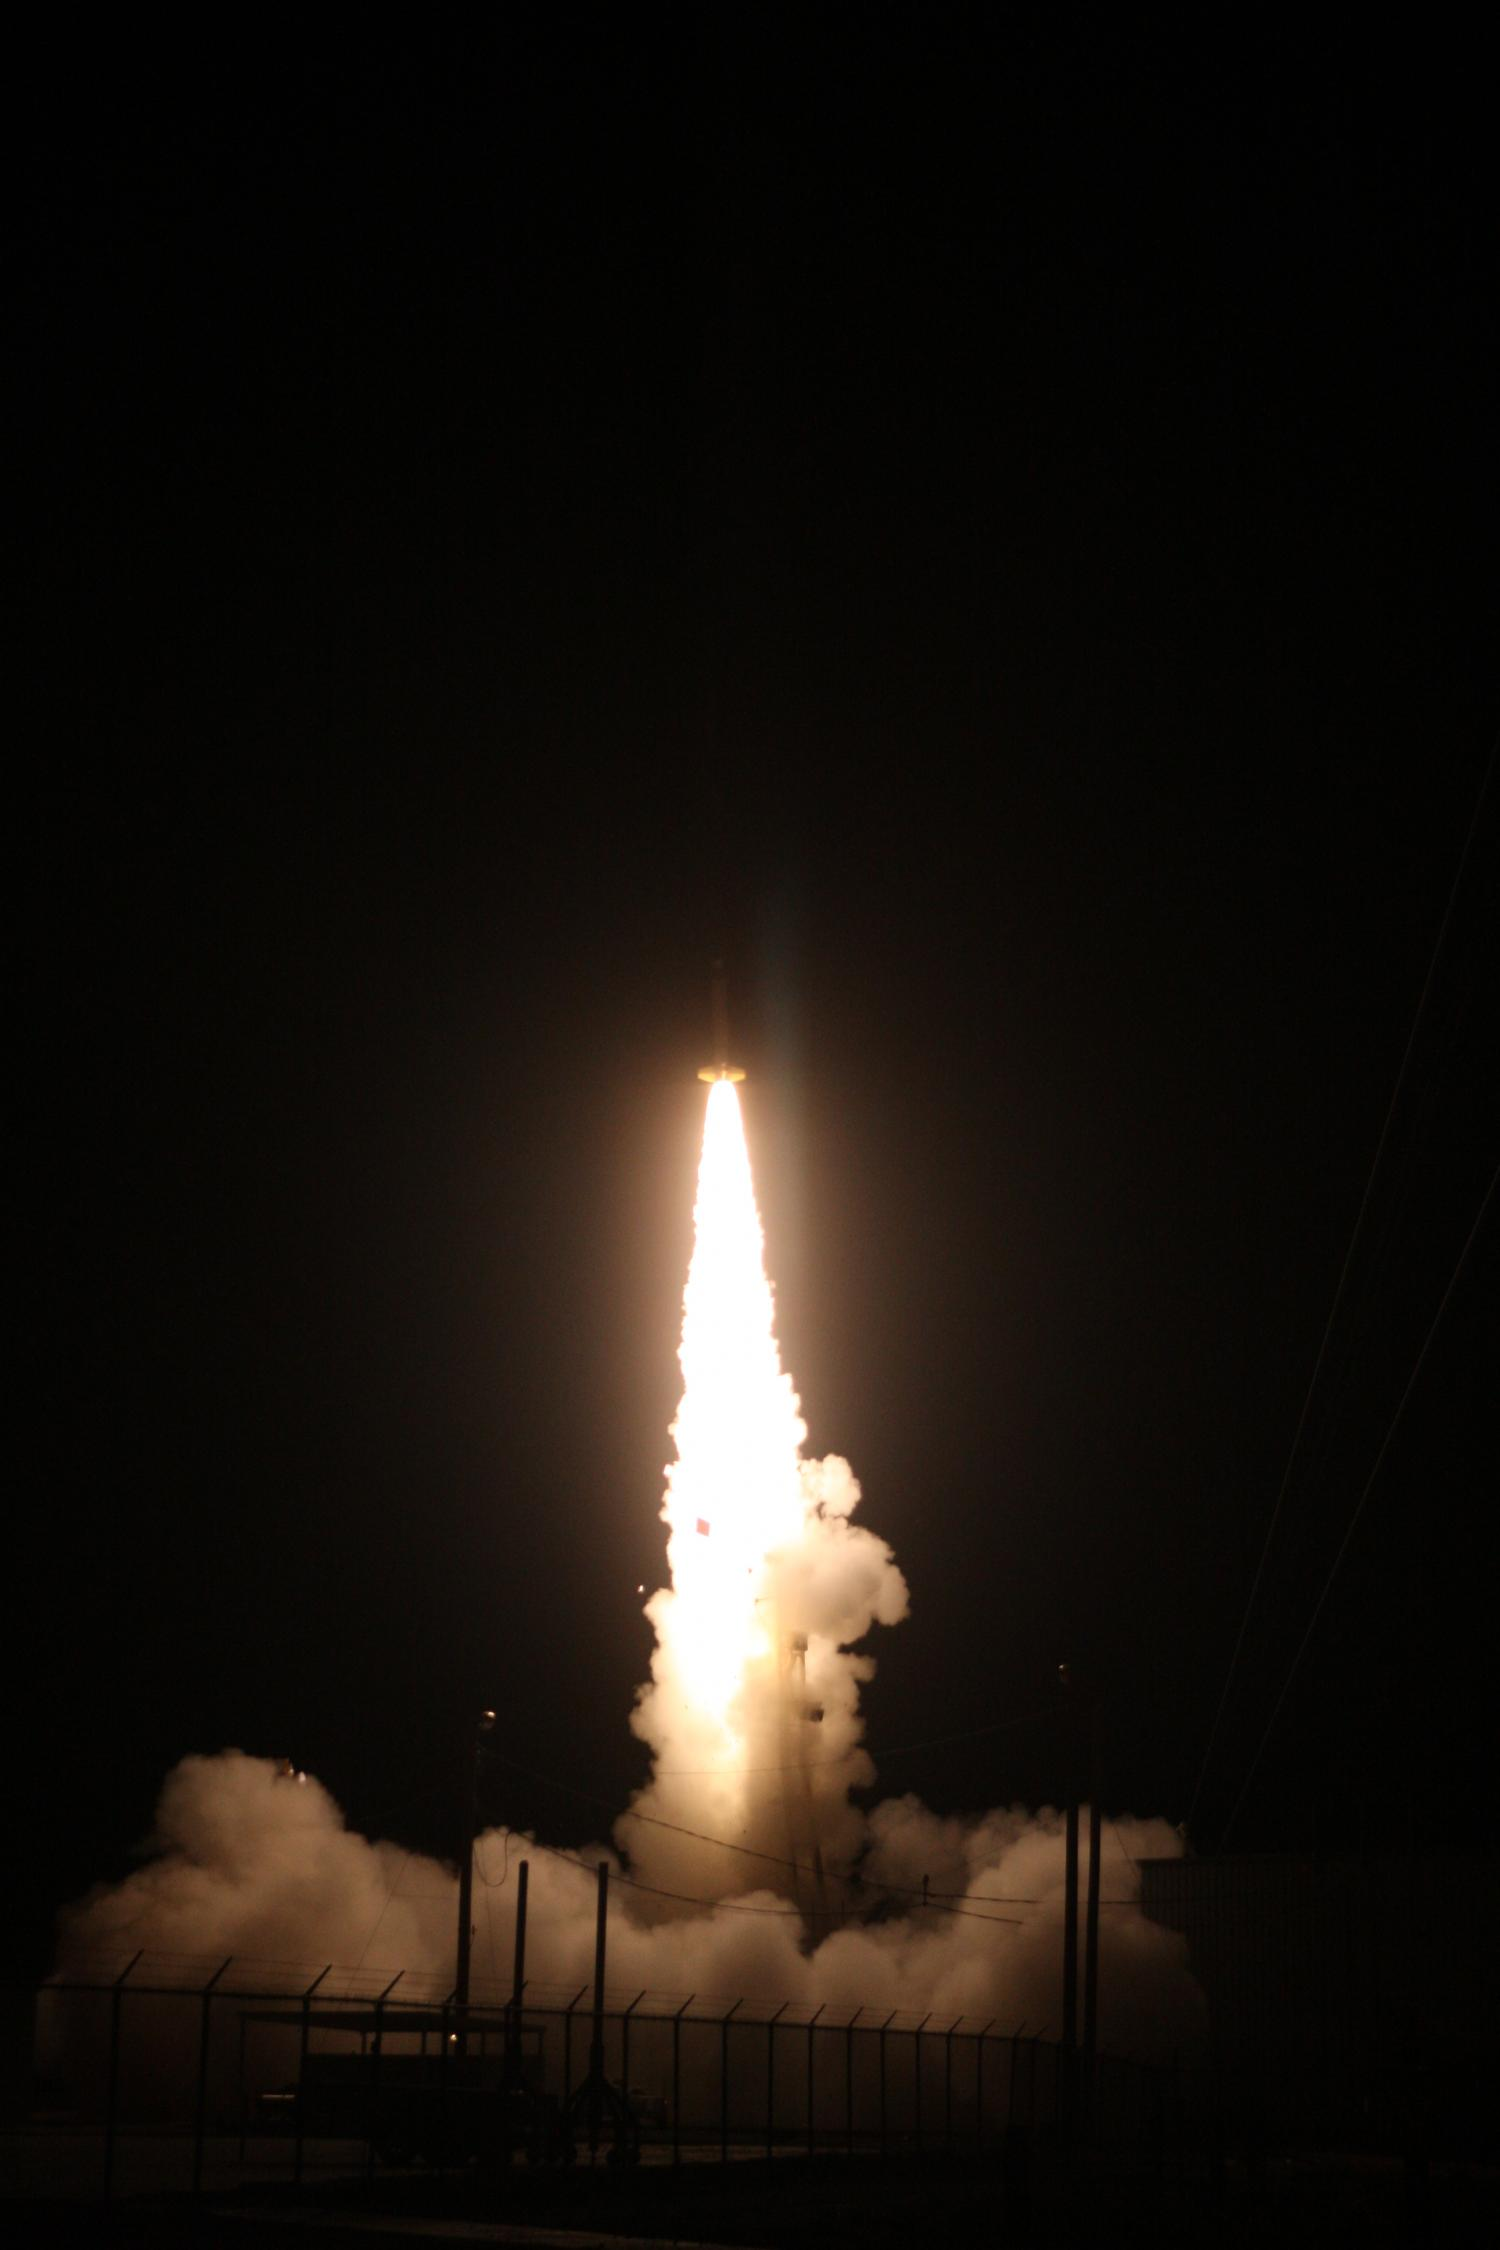 Sounding rocket solves one cosmic mystery, reveals another